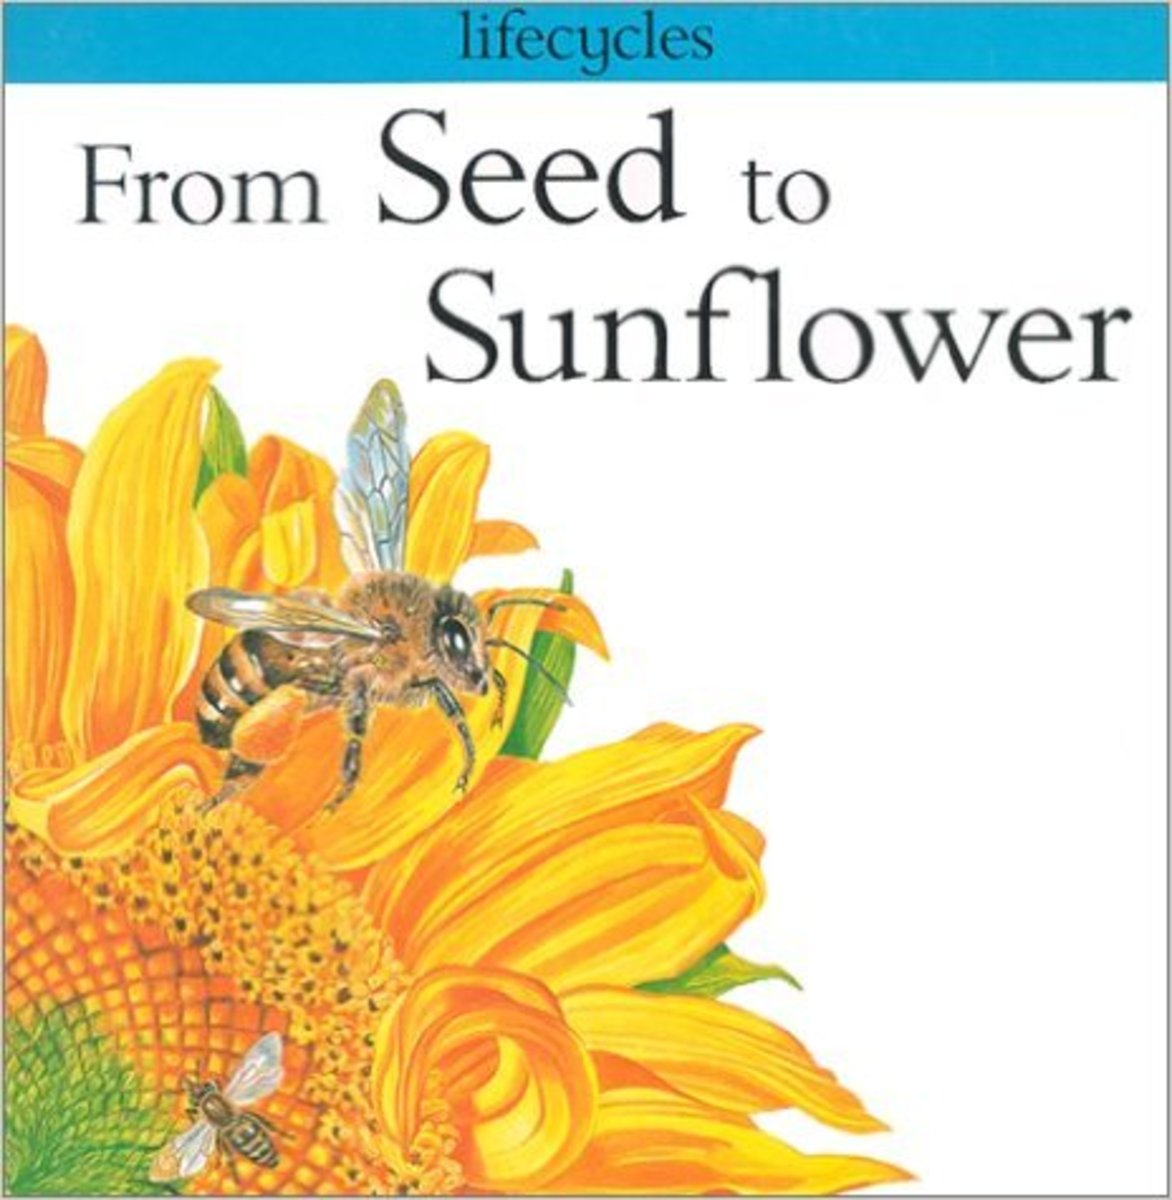 From Seed To Sunflower (Lifecycles) by Gerald Legg